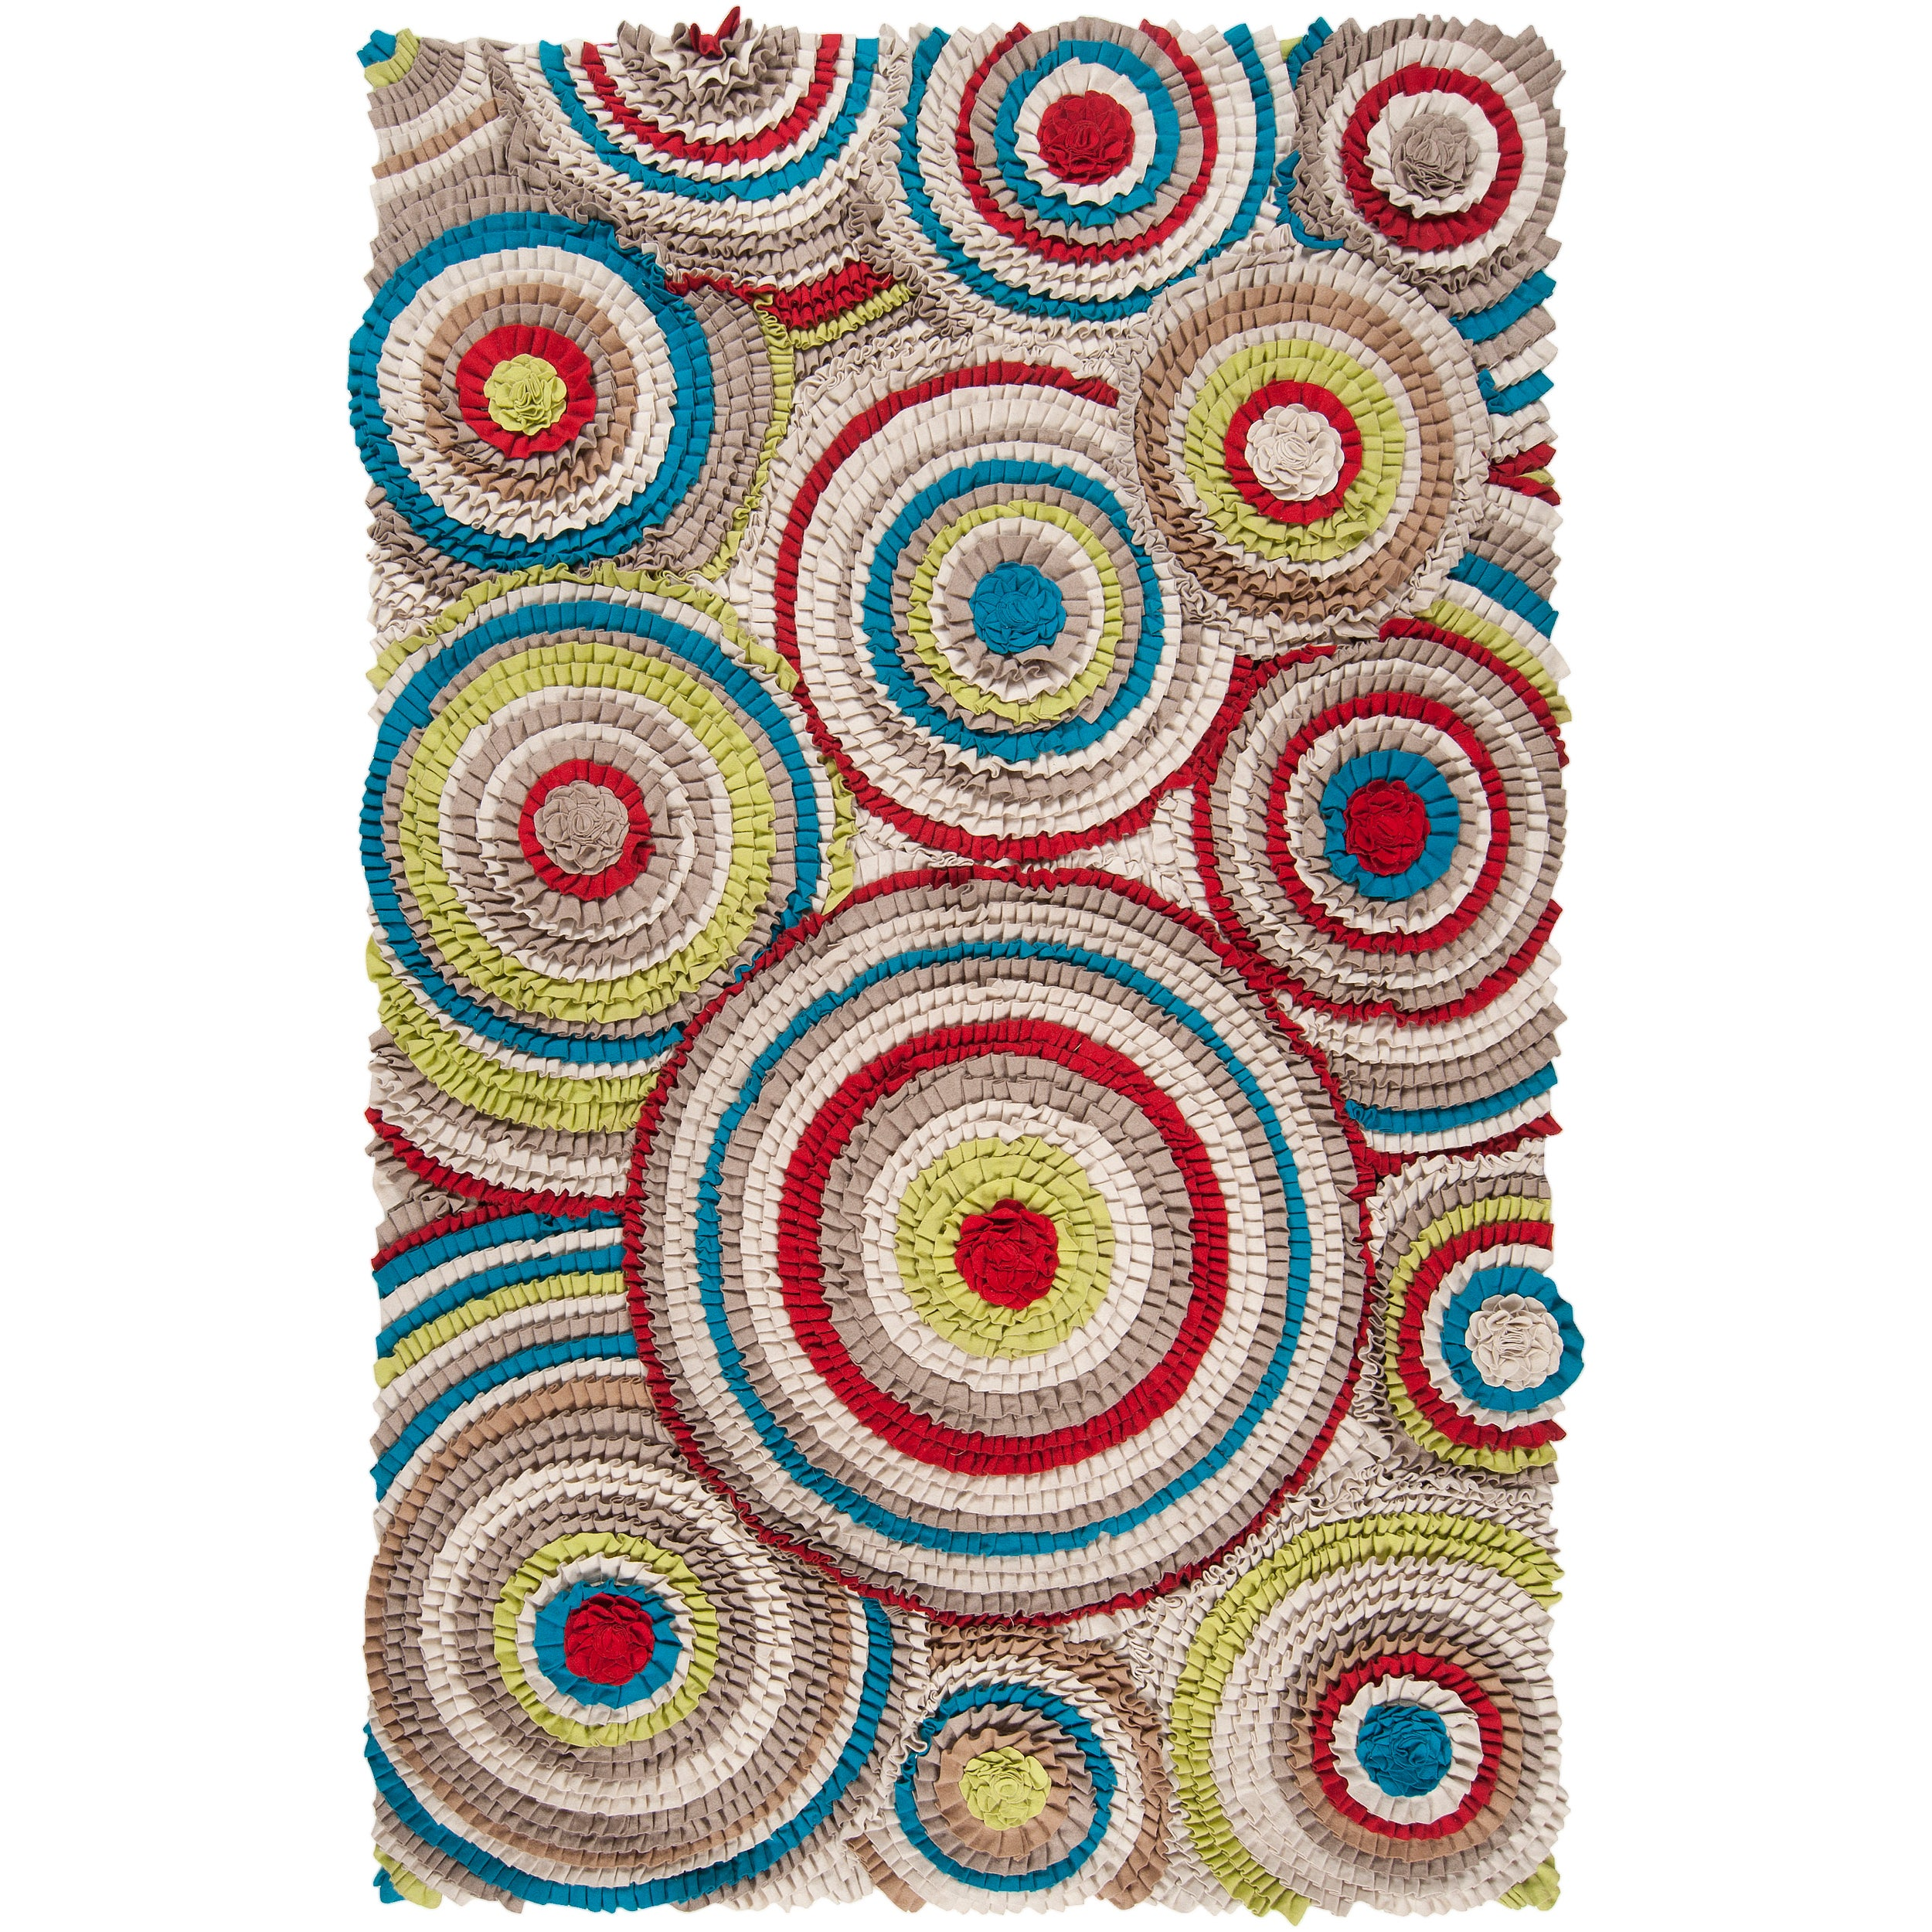 Hand-crafted Multi Colored Moral New Zealand Felted Wool Geometric TexturedRug (8'